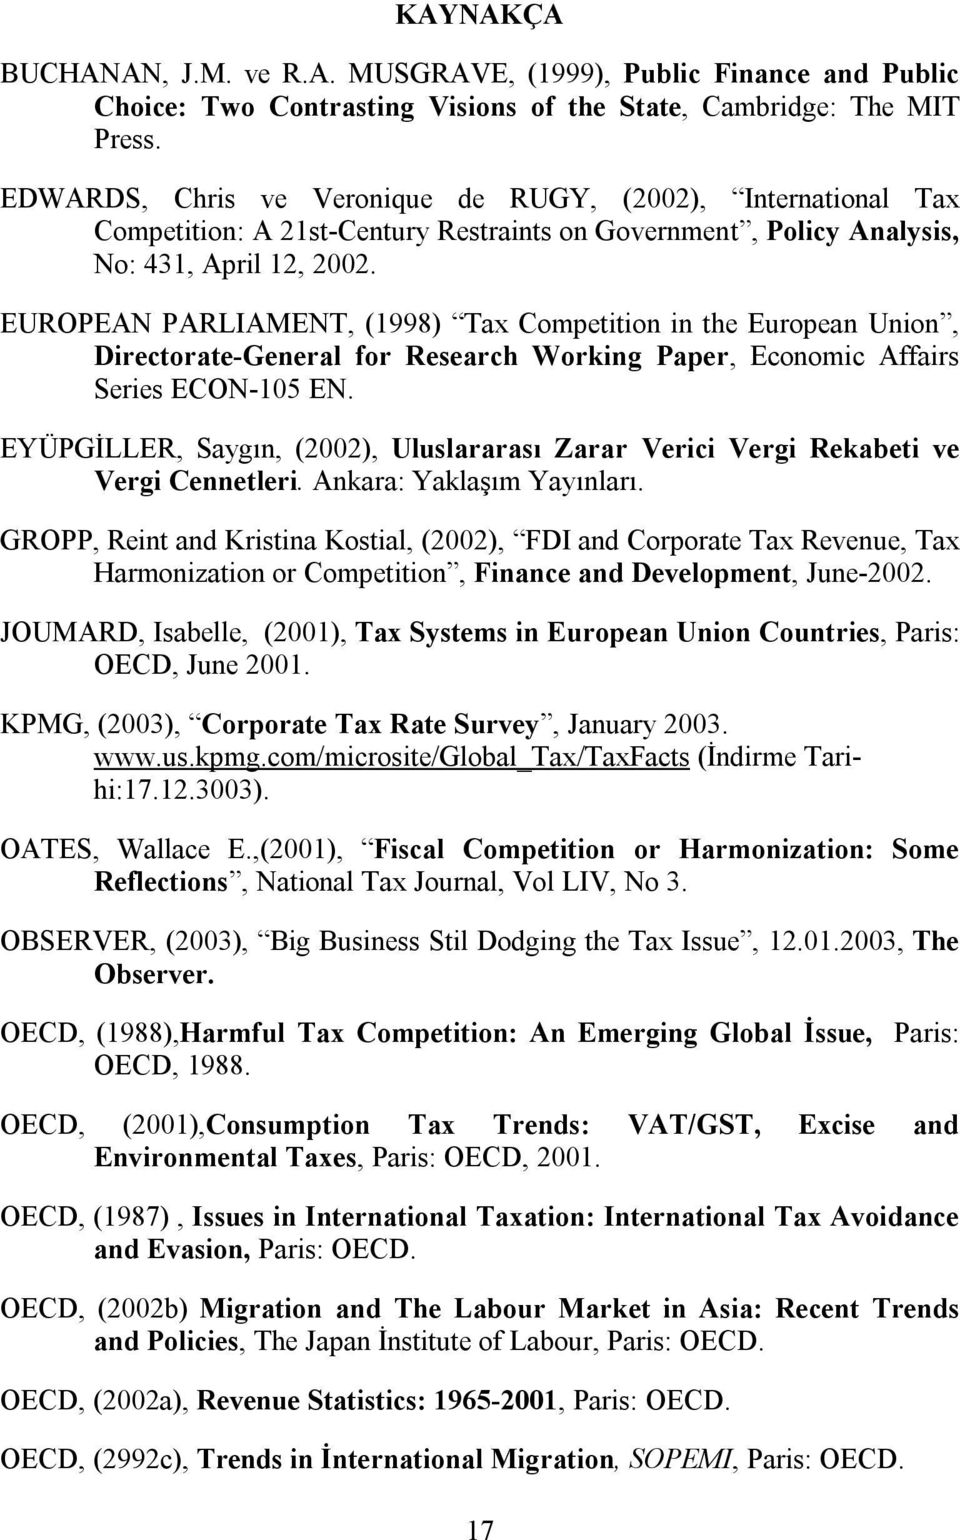 EUROPEAN PARLIAMENT, (1998) Tax Competition in the European Union, Directorate-General for Research Working Paper, Economic Affairs Series ECON-105 EN.